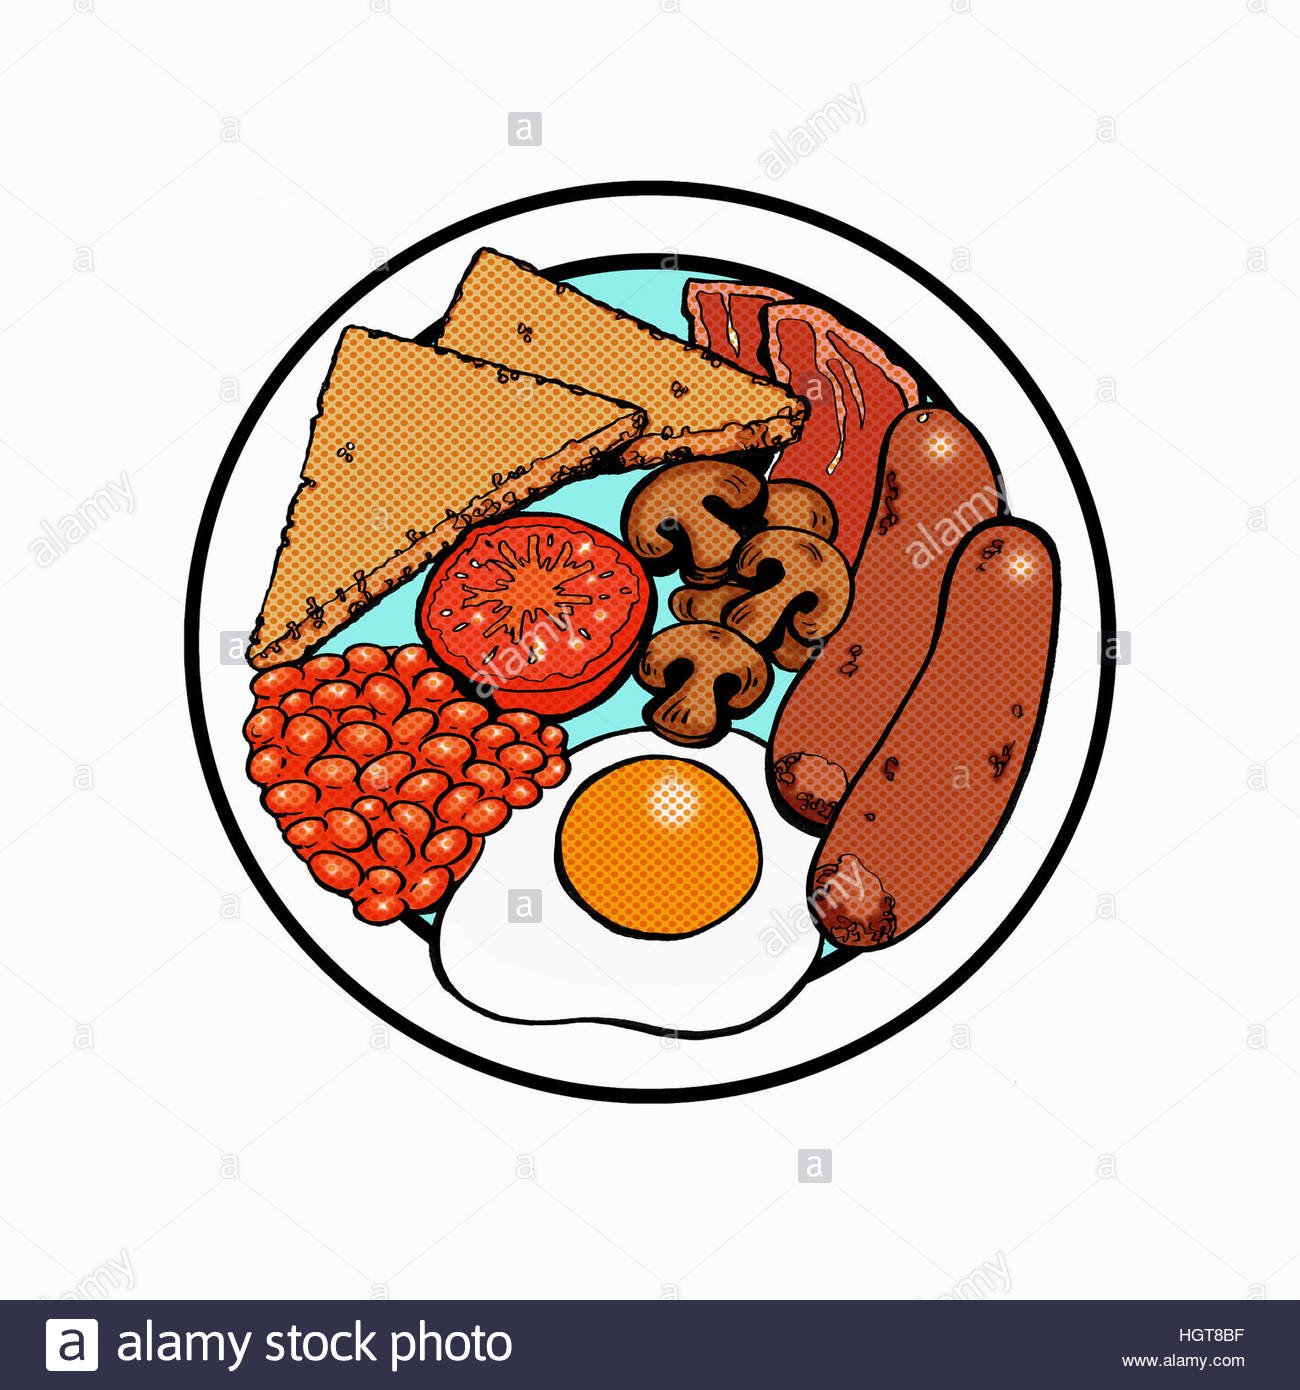 Overhead View Of Plate With Full English Breakfast Stock Photo